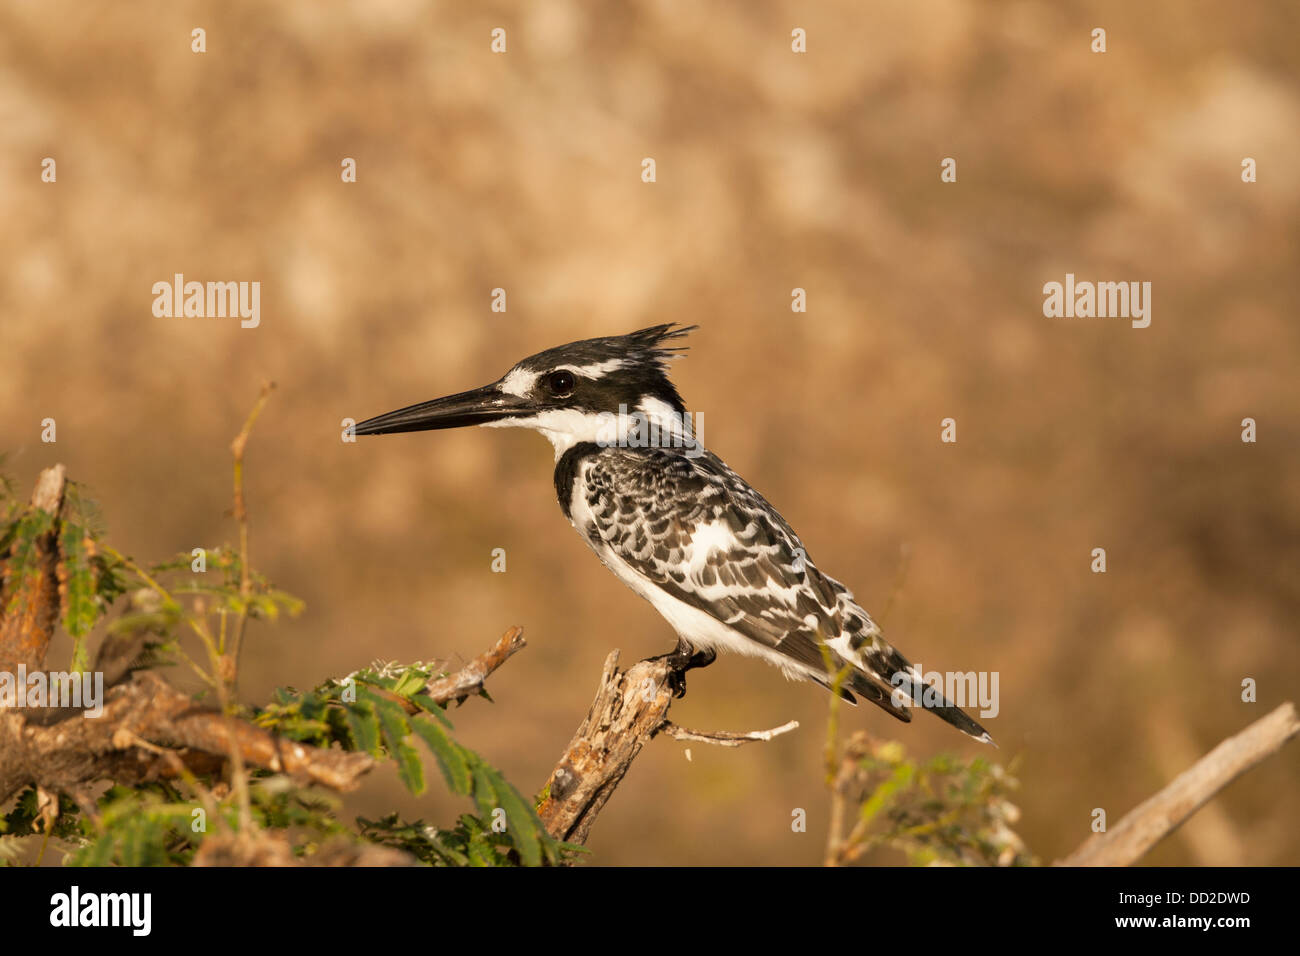 Close-up of a male Pied kingfisher in Botswana - Stock Image